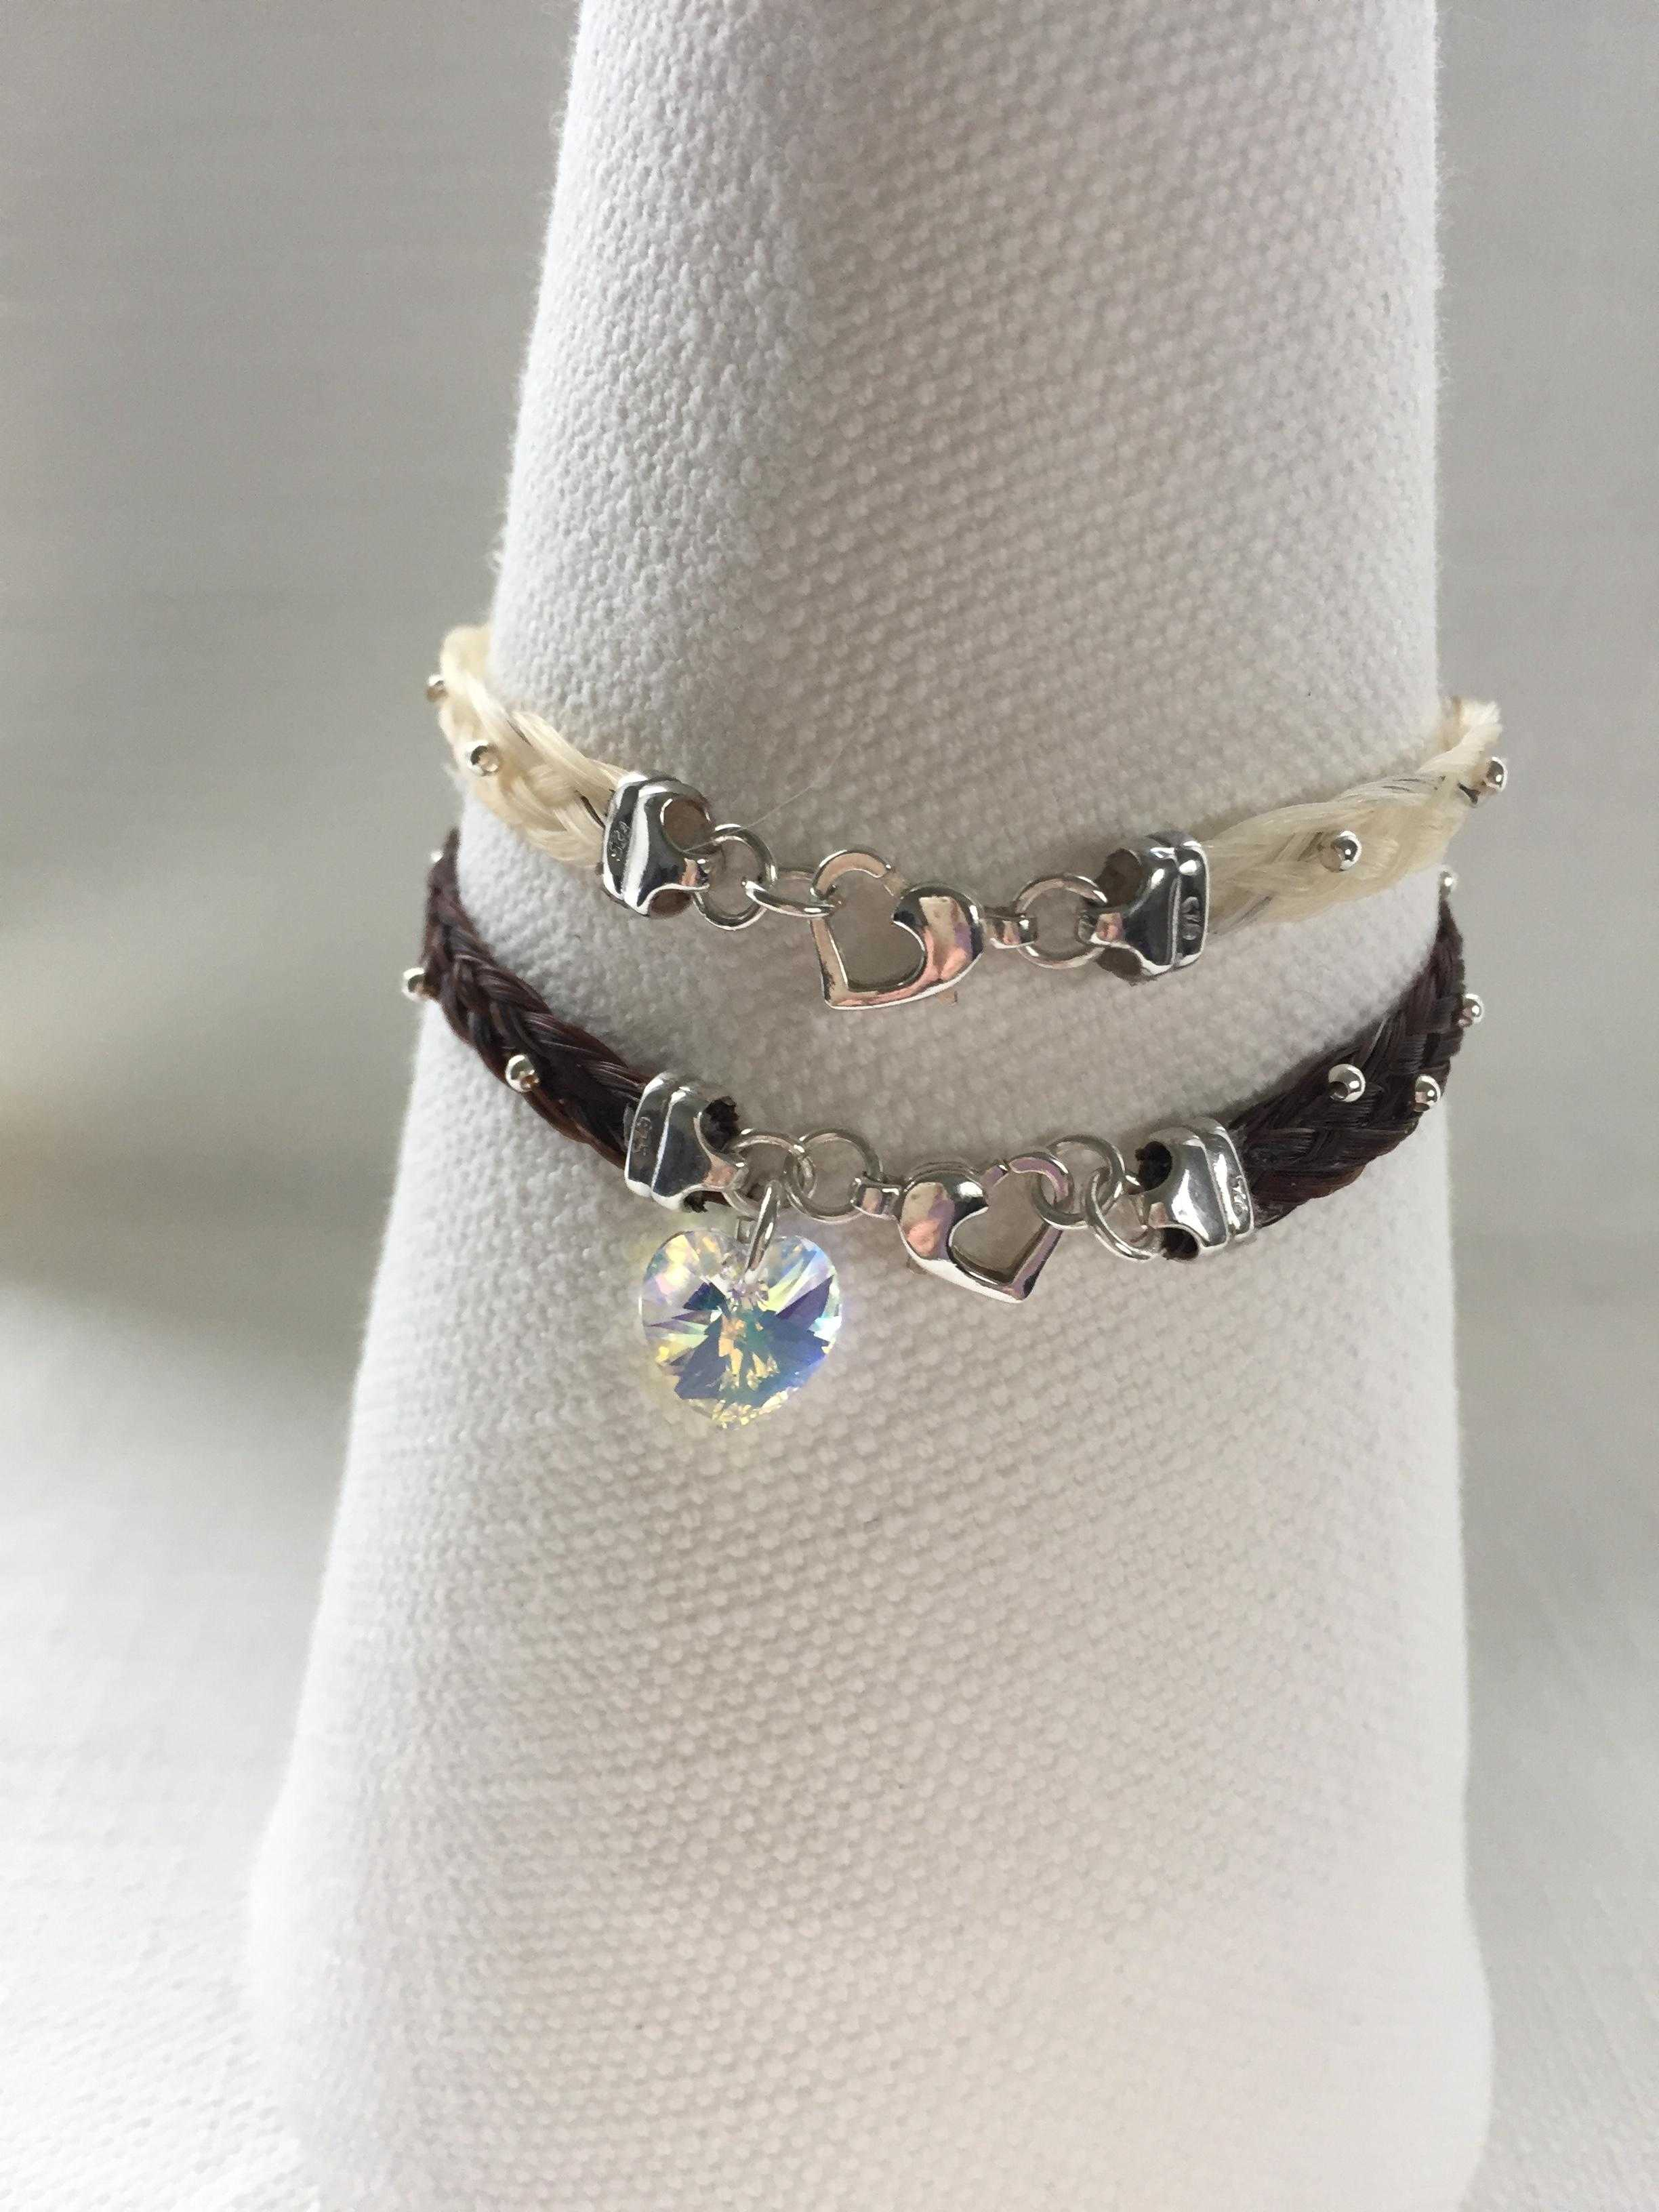 Horse Hair Bracelets with Crystal Charm